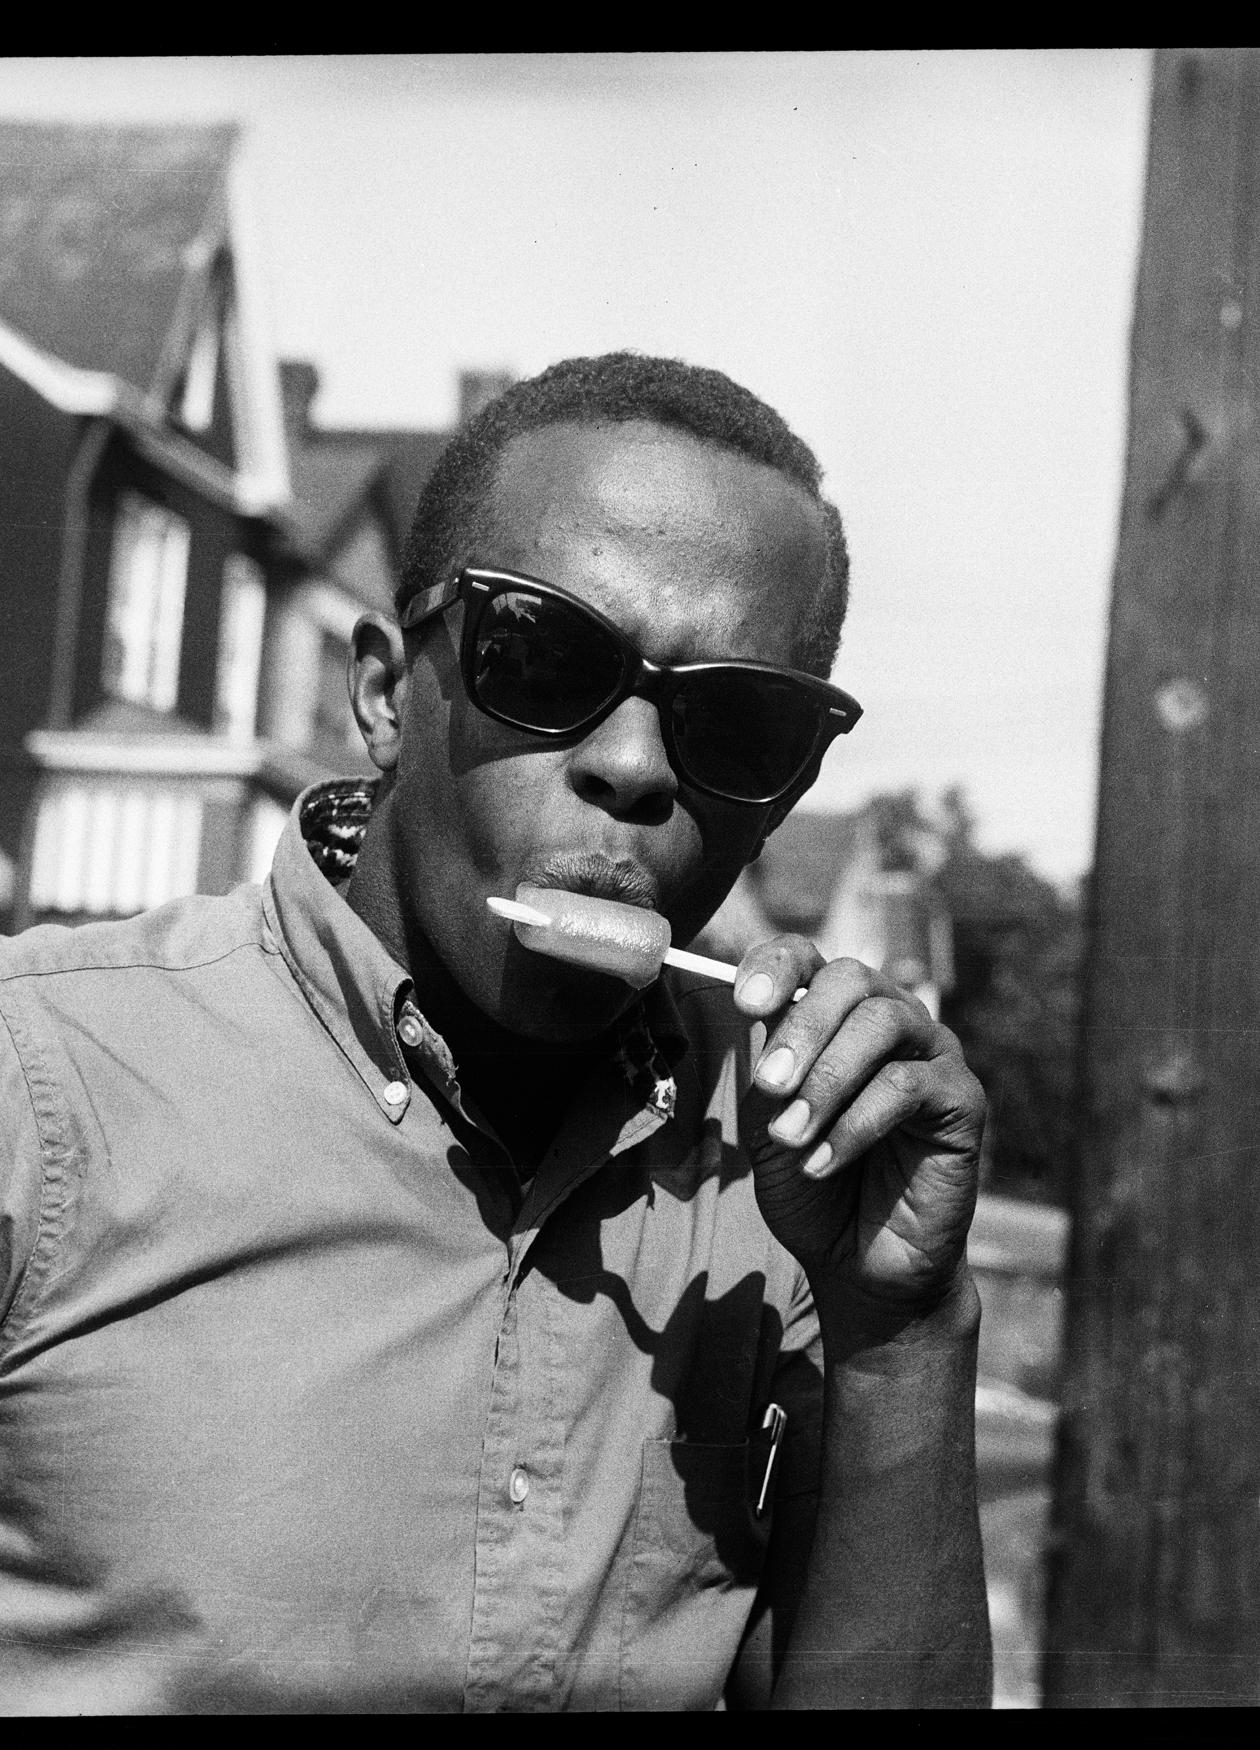 A young african american man wearing sunglasses and eating a popsicle photo caption